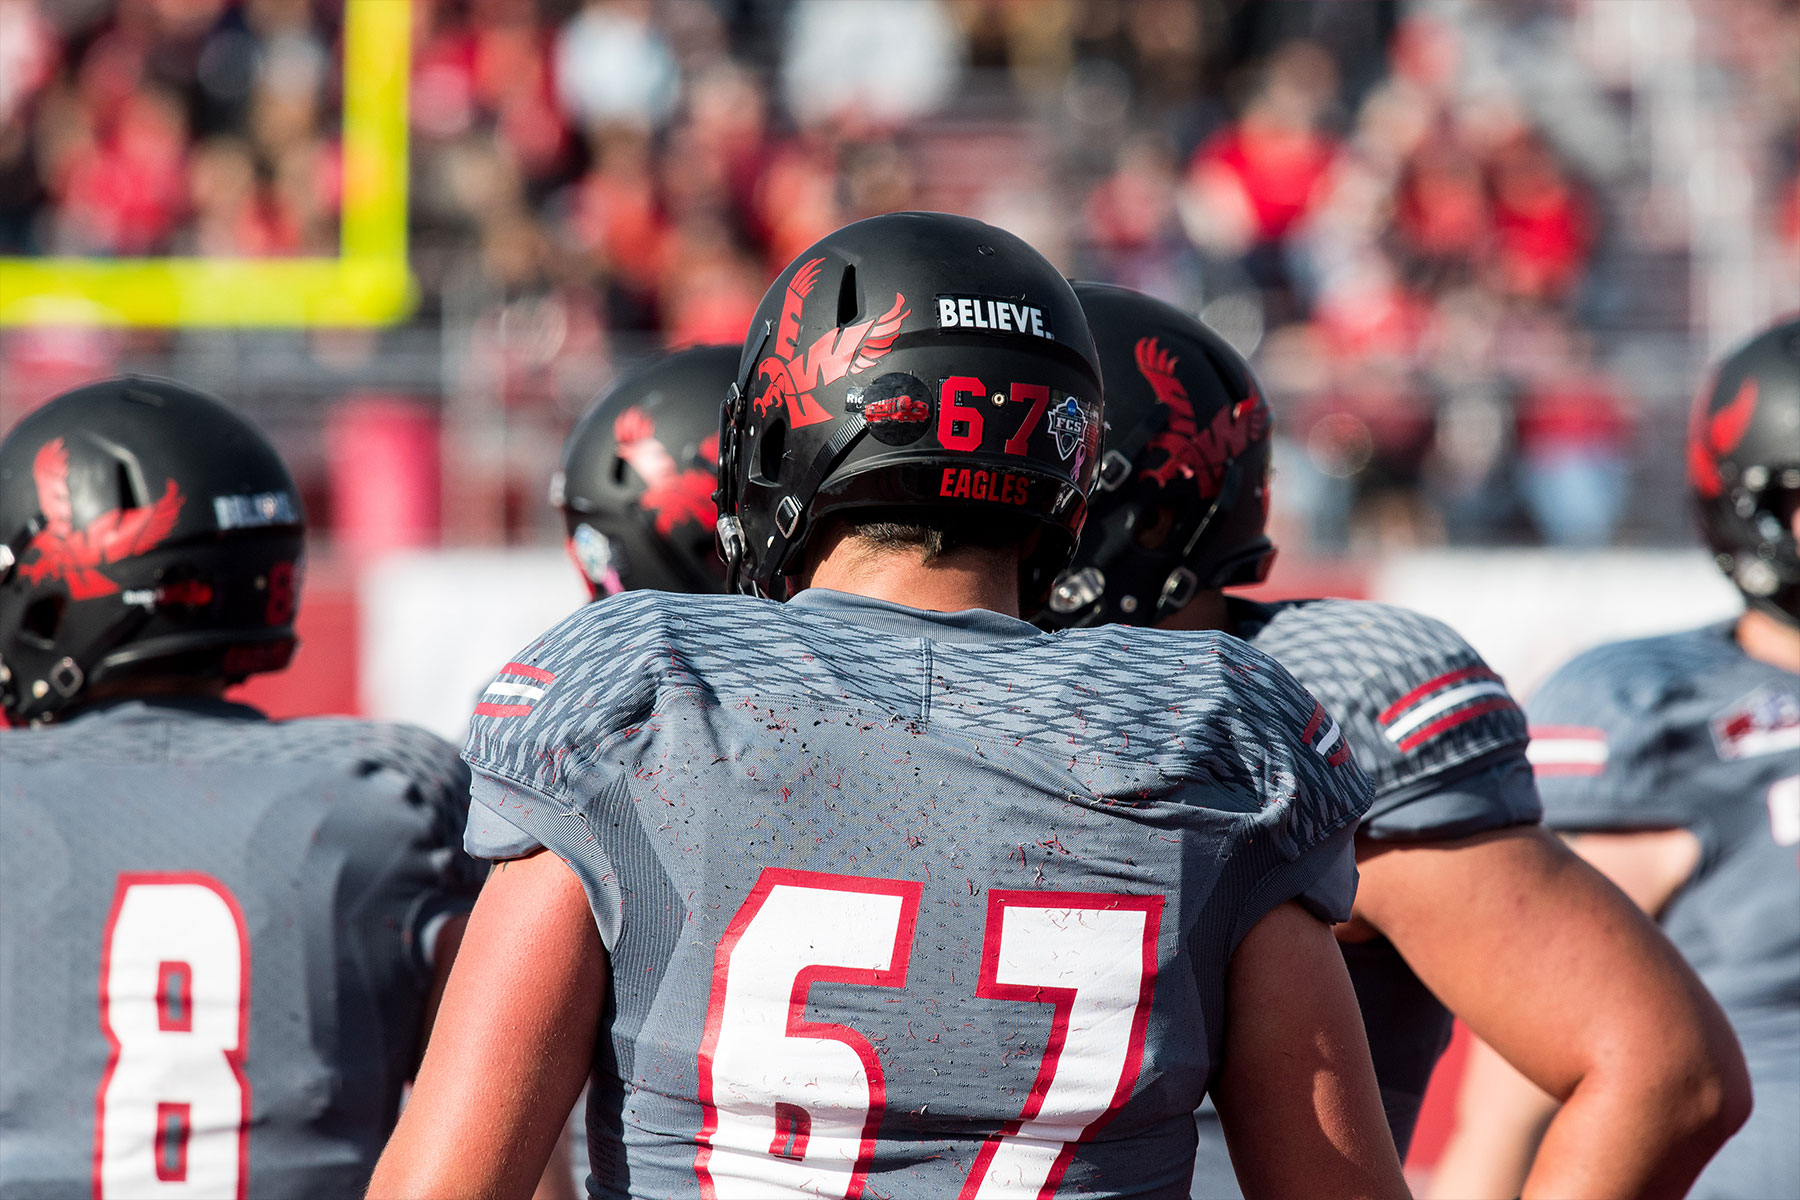 EagsBelieve Game – EWU vs. UC Davis